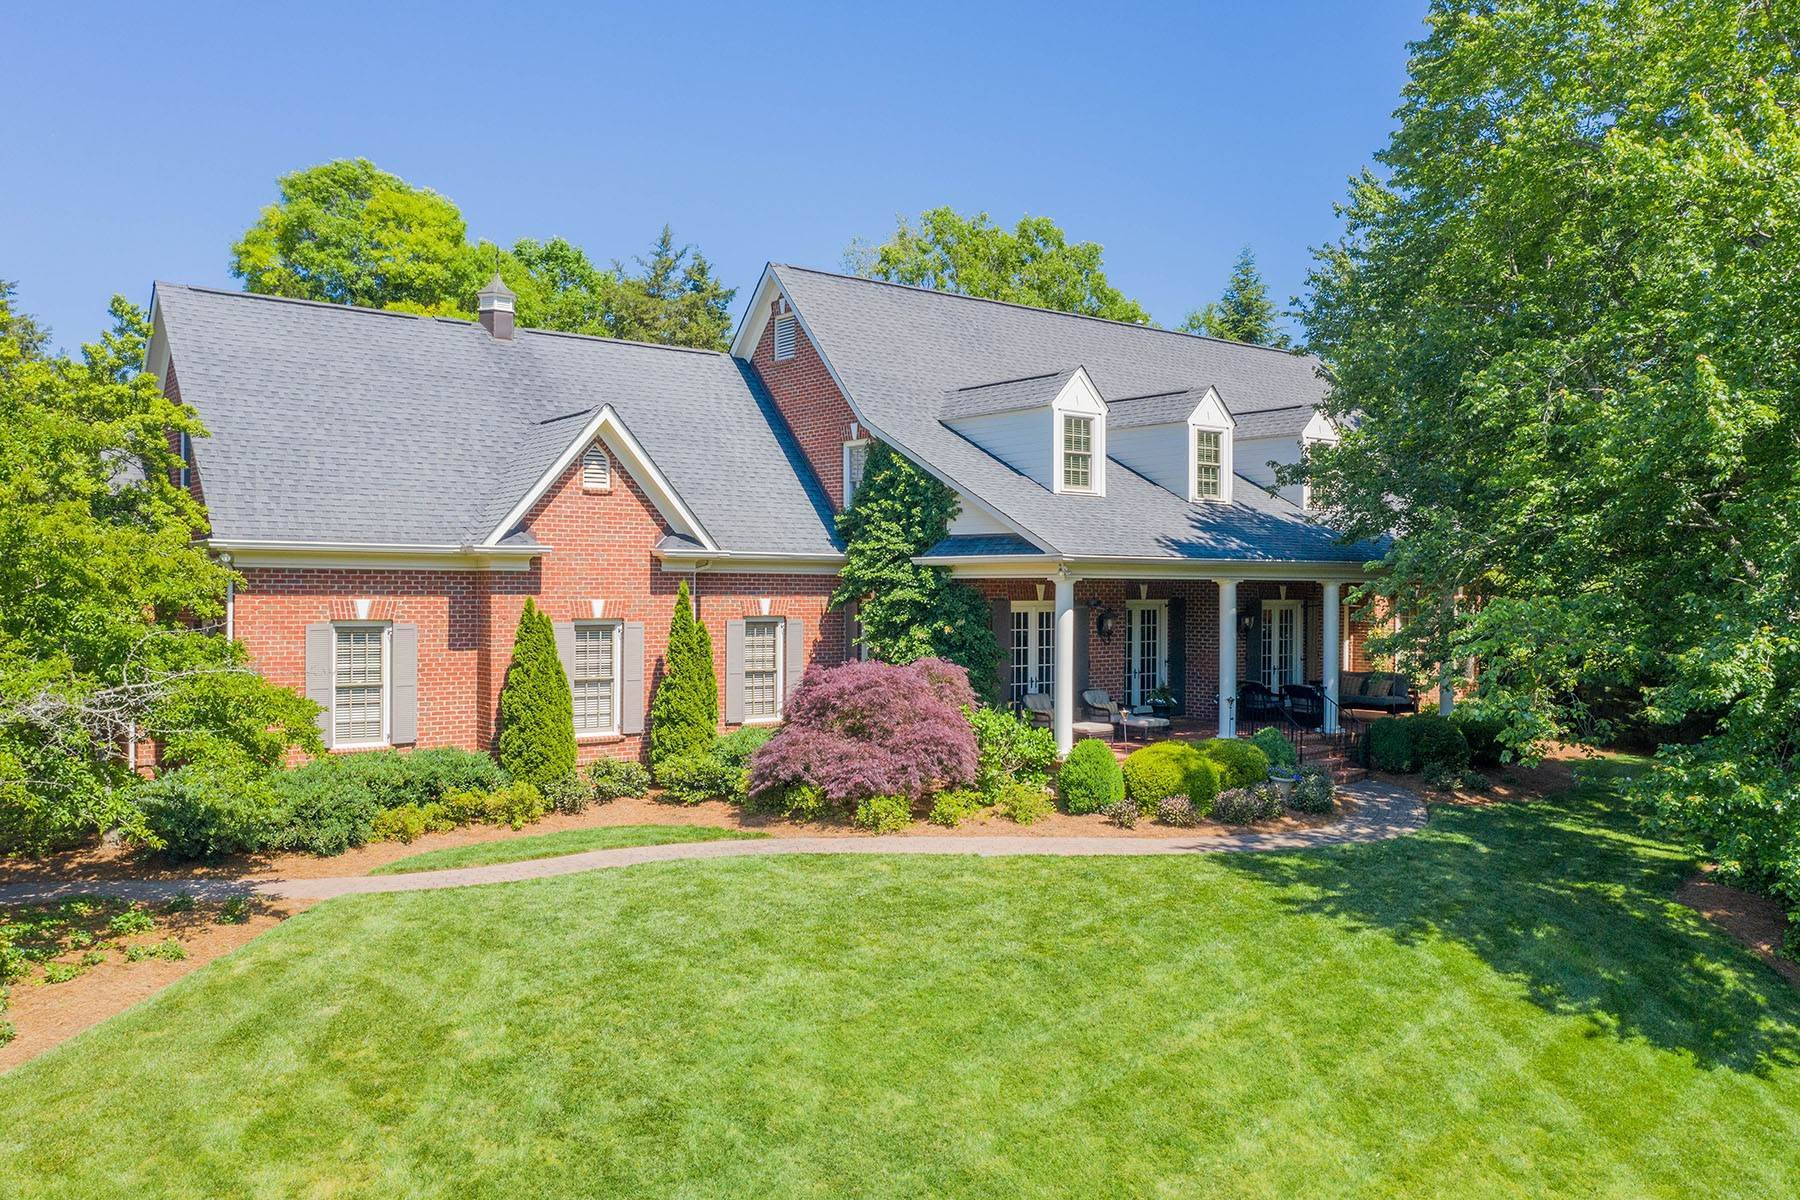 Single Family Homes for Active at 5228 Carmel Park Drive Charlotte, North Carolina 28226 United States